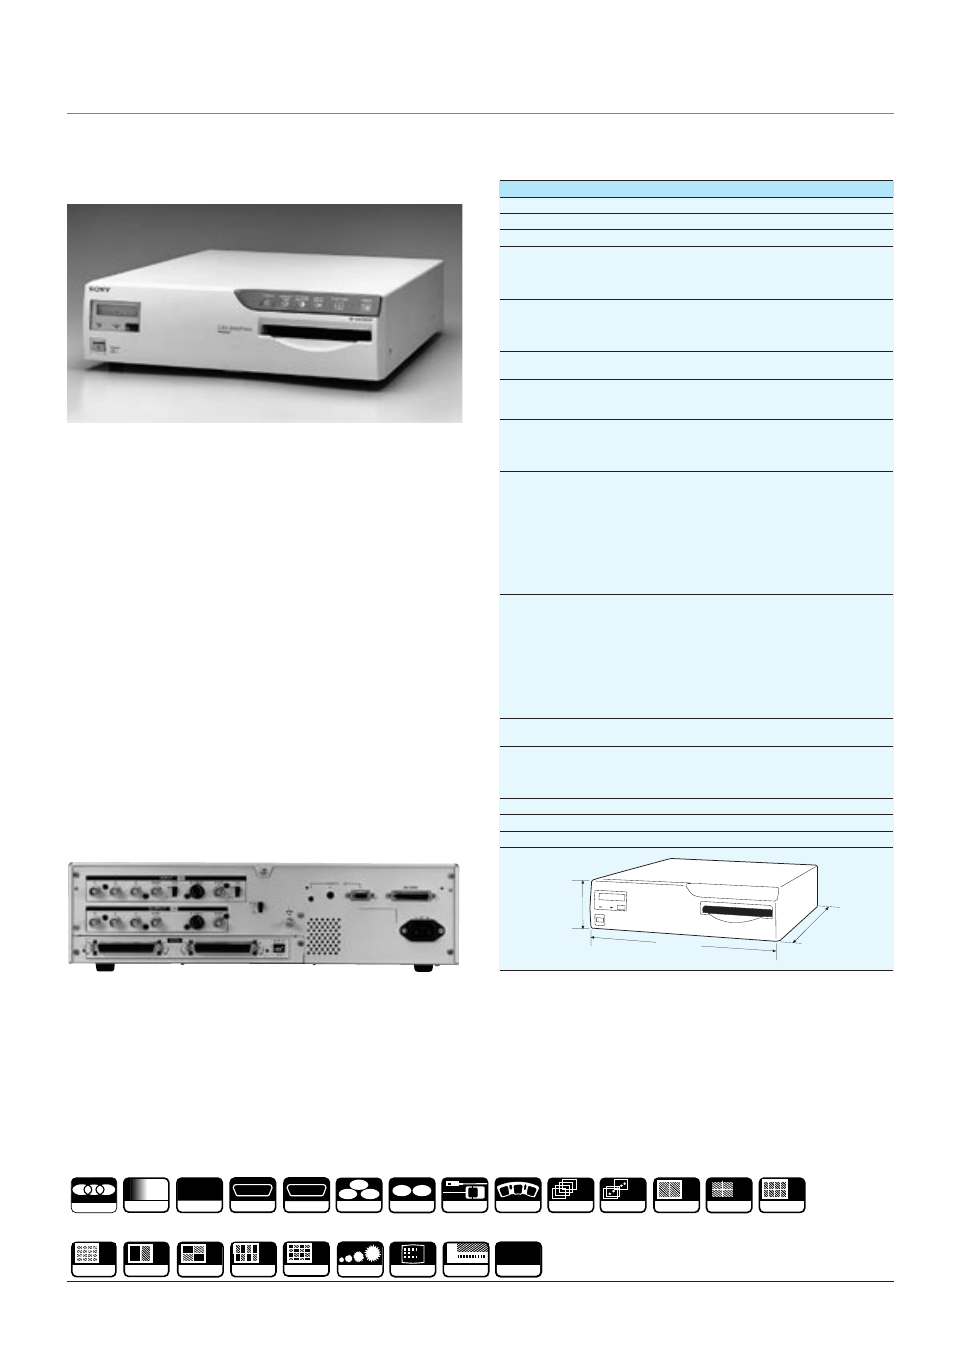 up 5600mdp colour video printers supplied accessories sony cctv rh manualsdir com Sony Wireless Headphones Manual Sony Operating Manuals